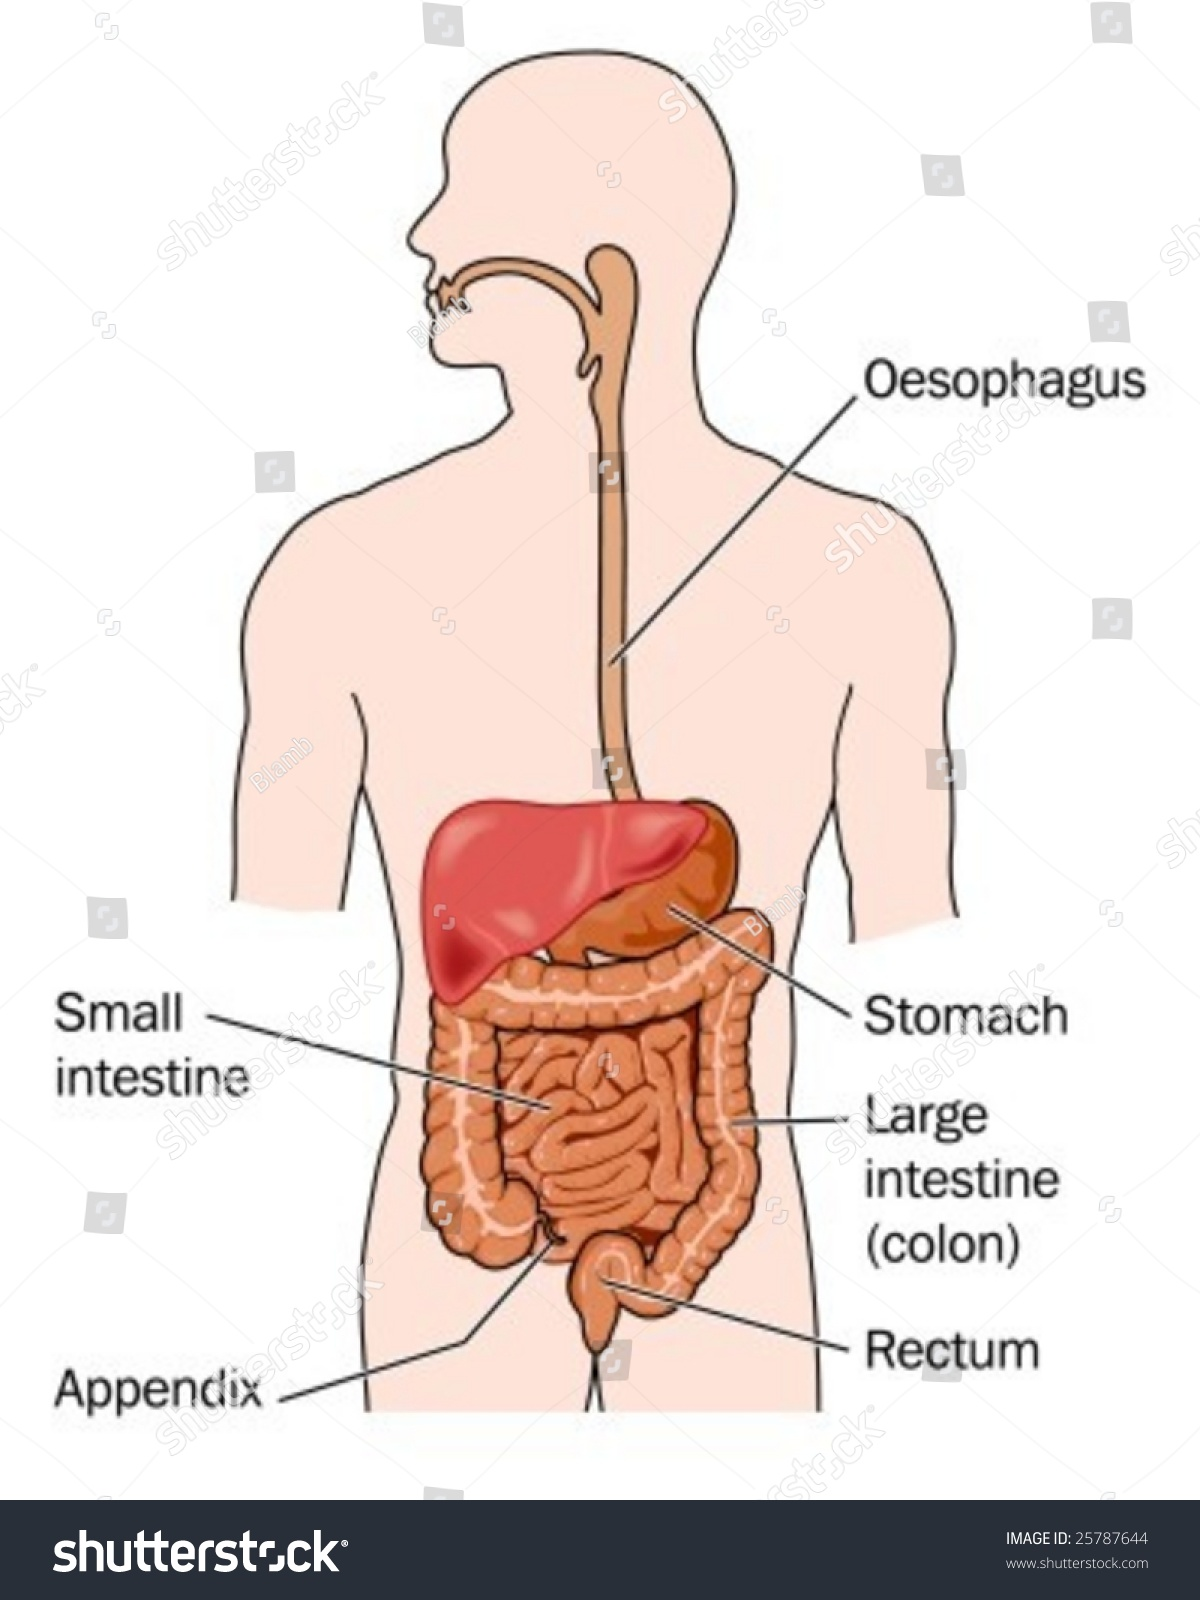 Human Digestive System Labeled Stock Vector